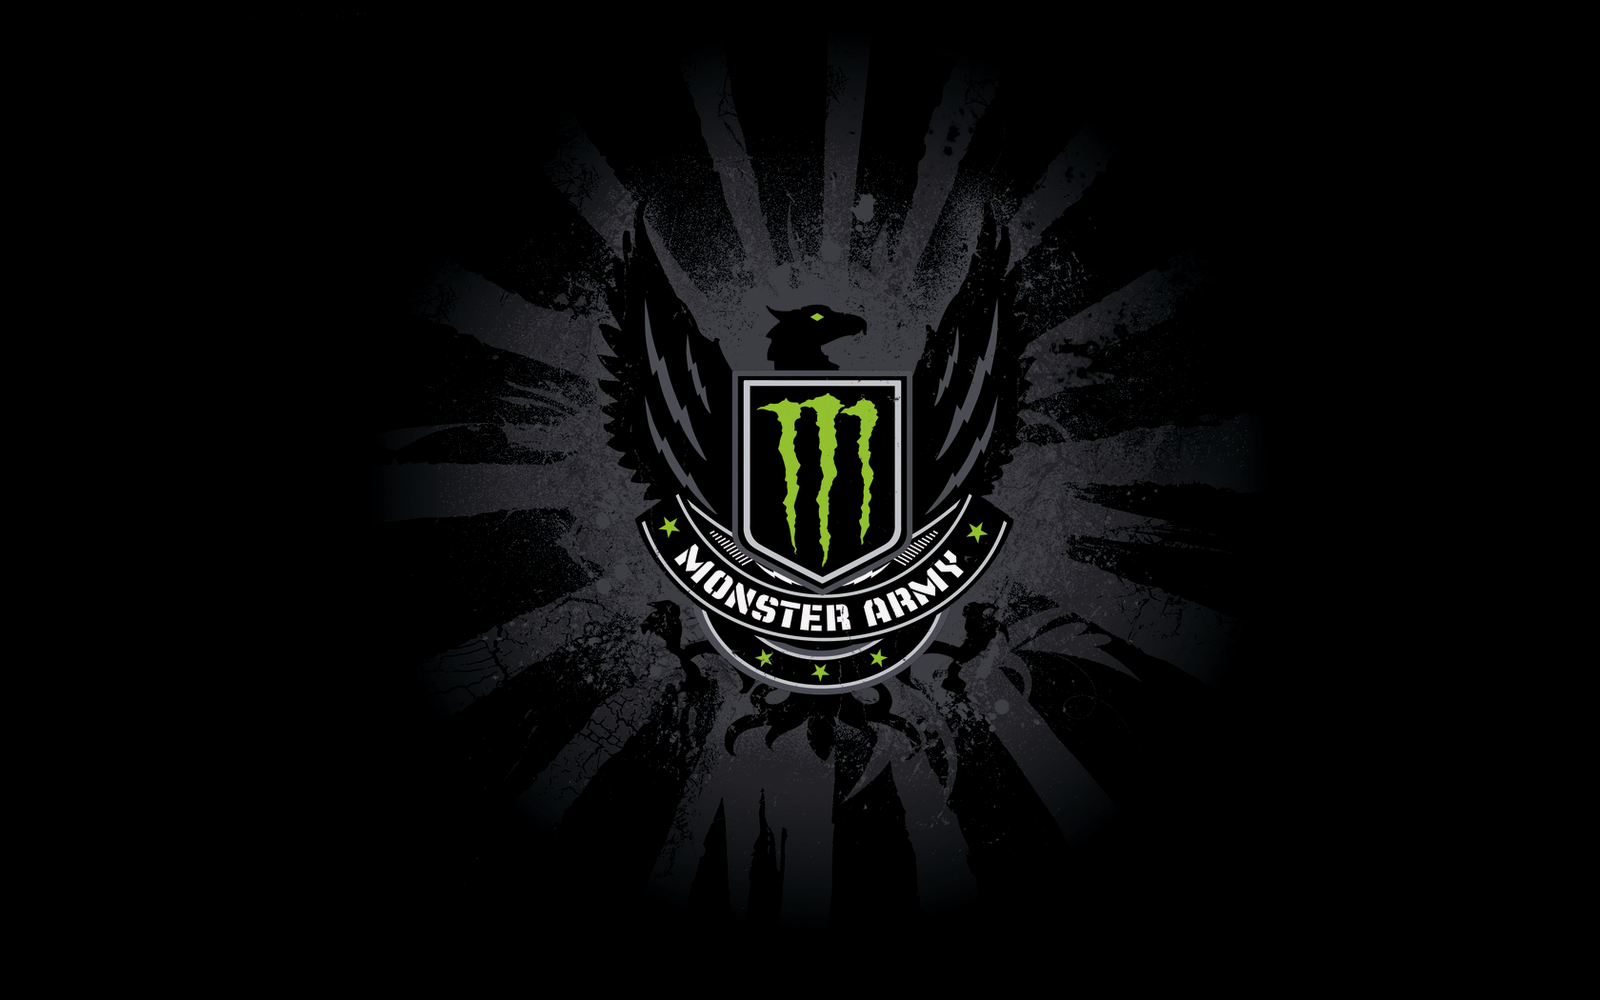 Adorable HDQ Backgrounds of Monster Energy, 1600x1000